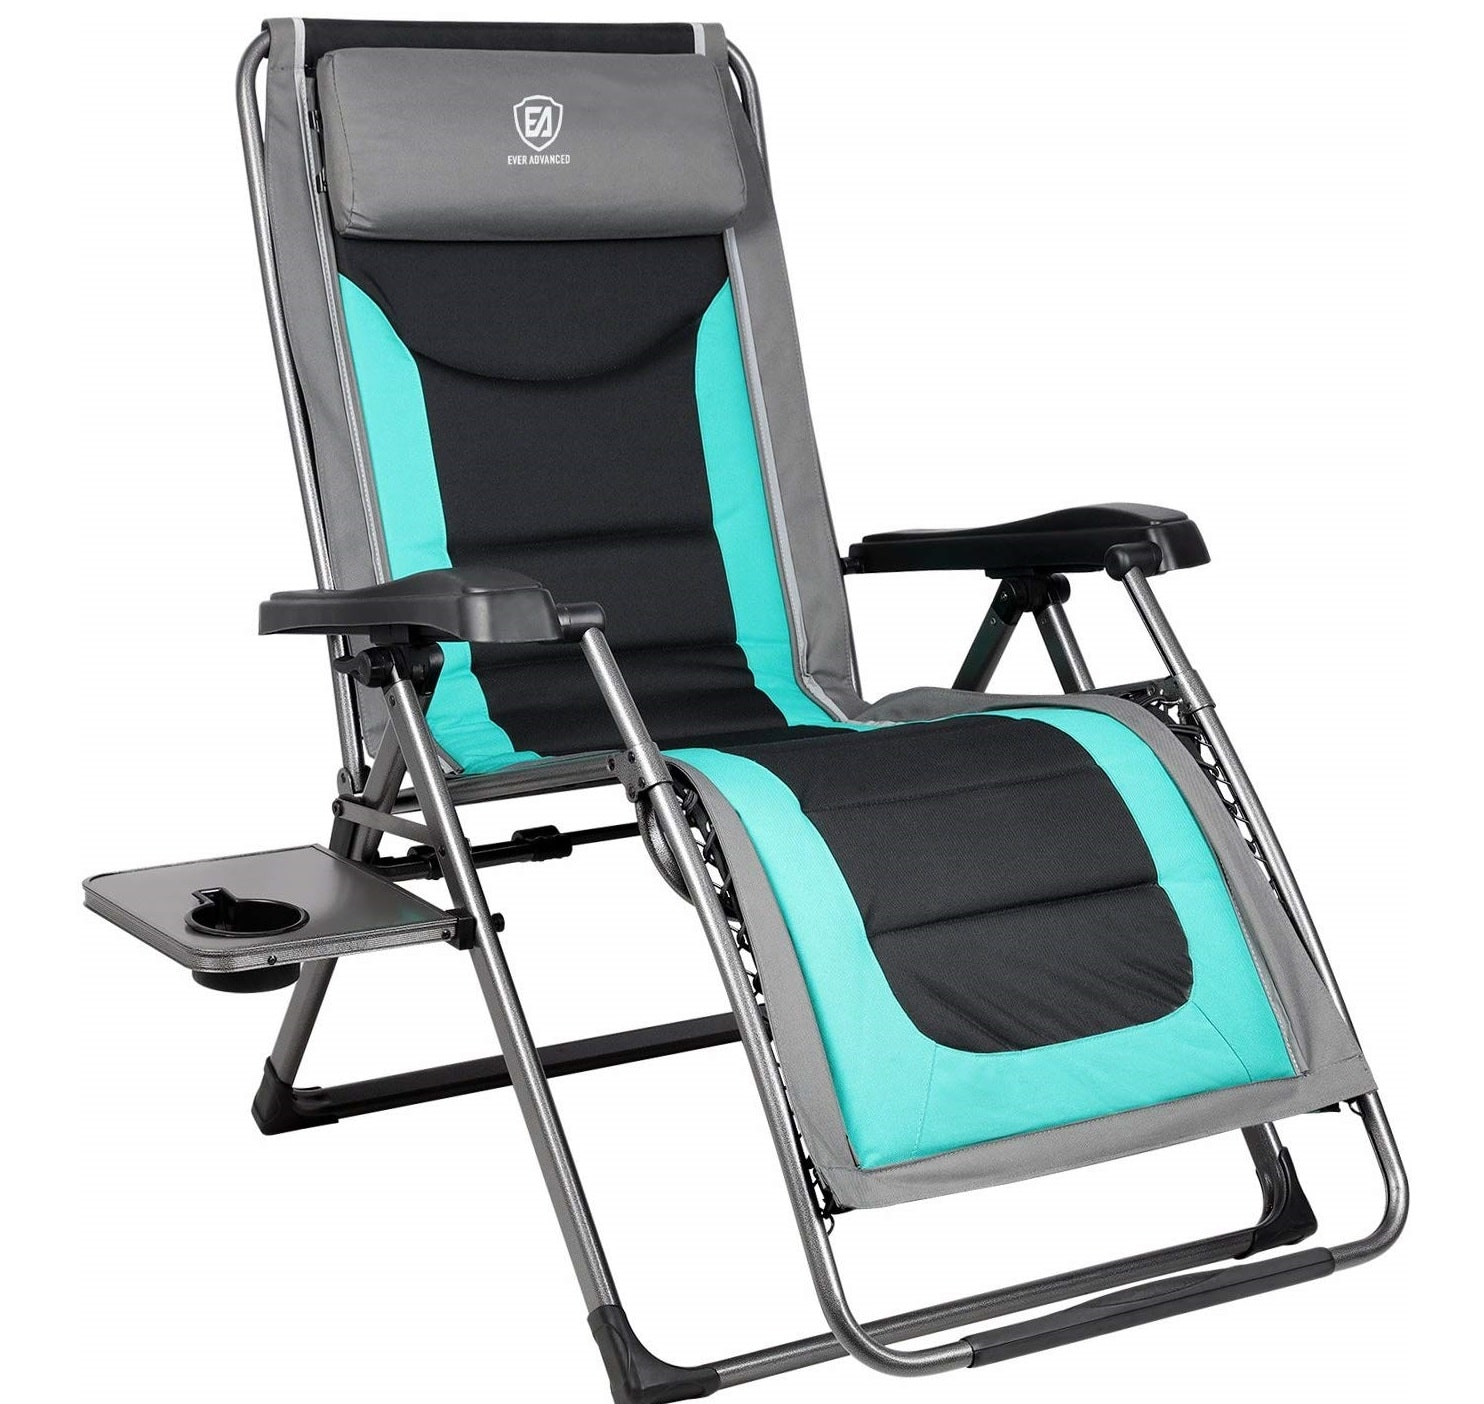 7. EVER ADVANCED Oversized Zero Gravity Folding Lounger Chair with Recliner Padded - Outdoor Patio Beach Lounge Chair with Adjustable Headrest